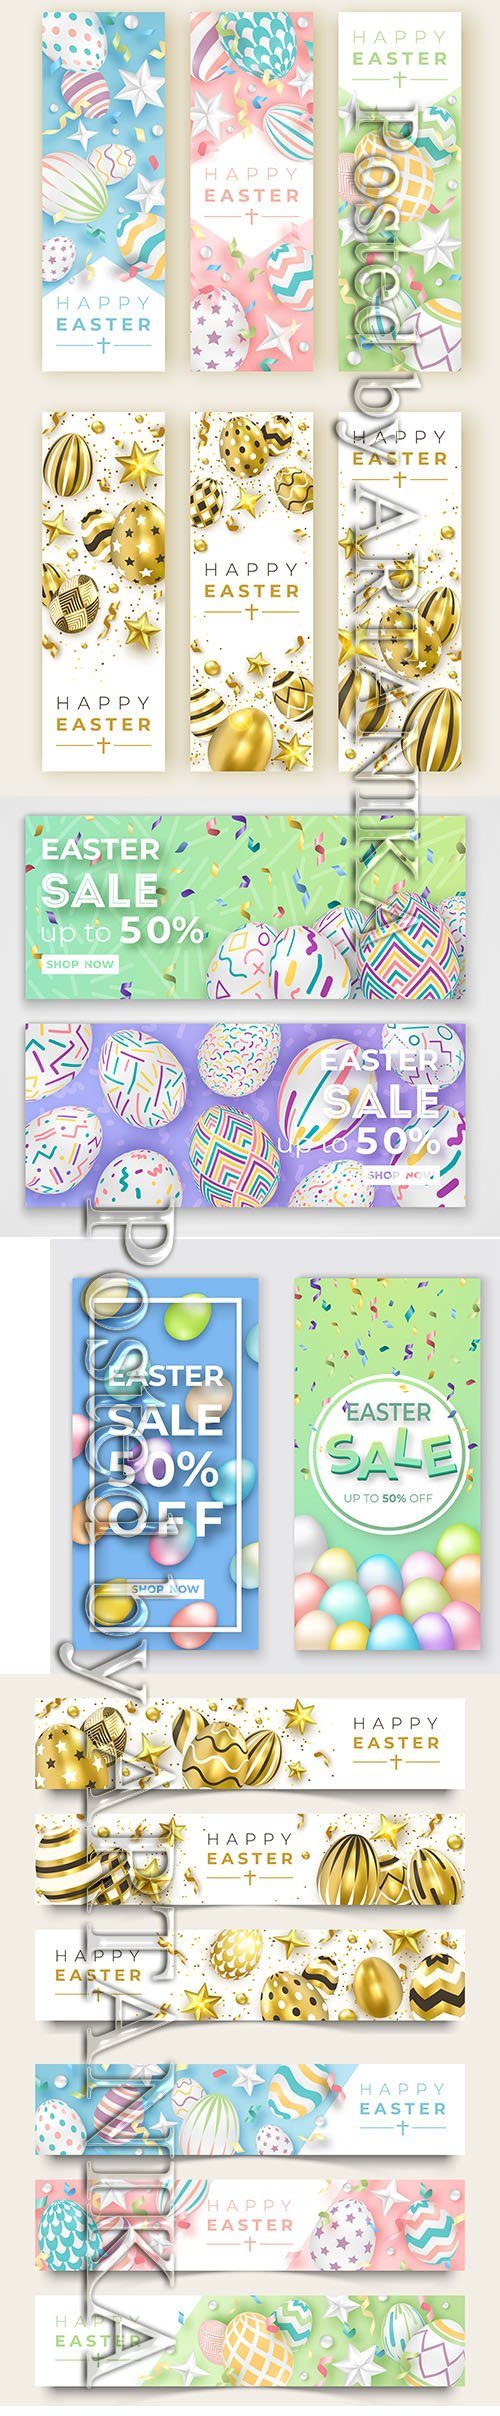 Happy Easter Vertical and Horizontal Banners Pack